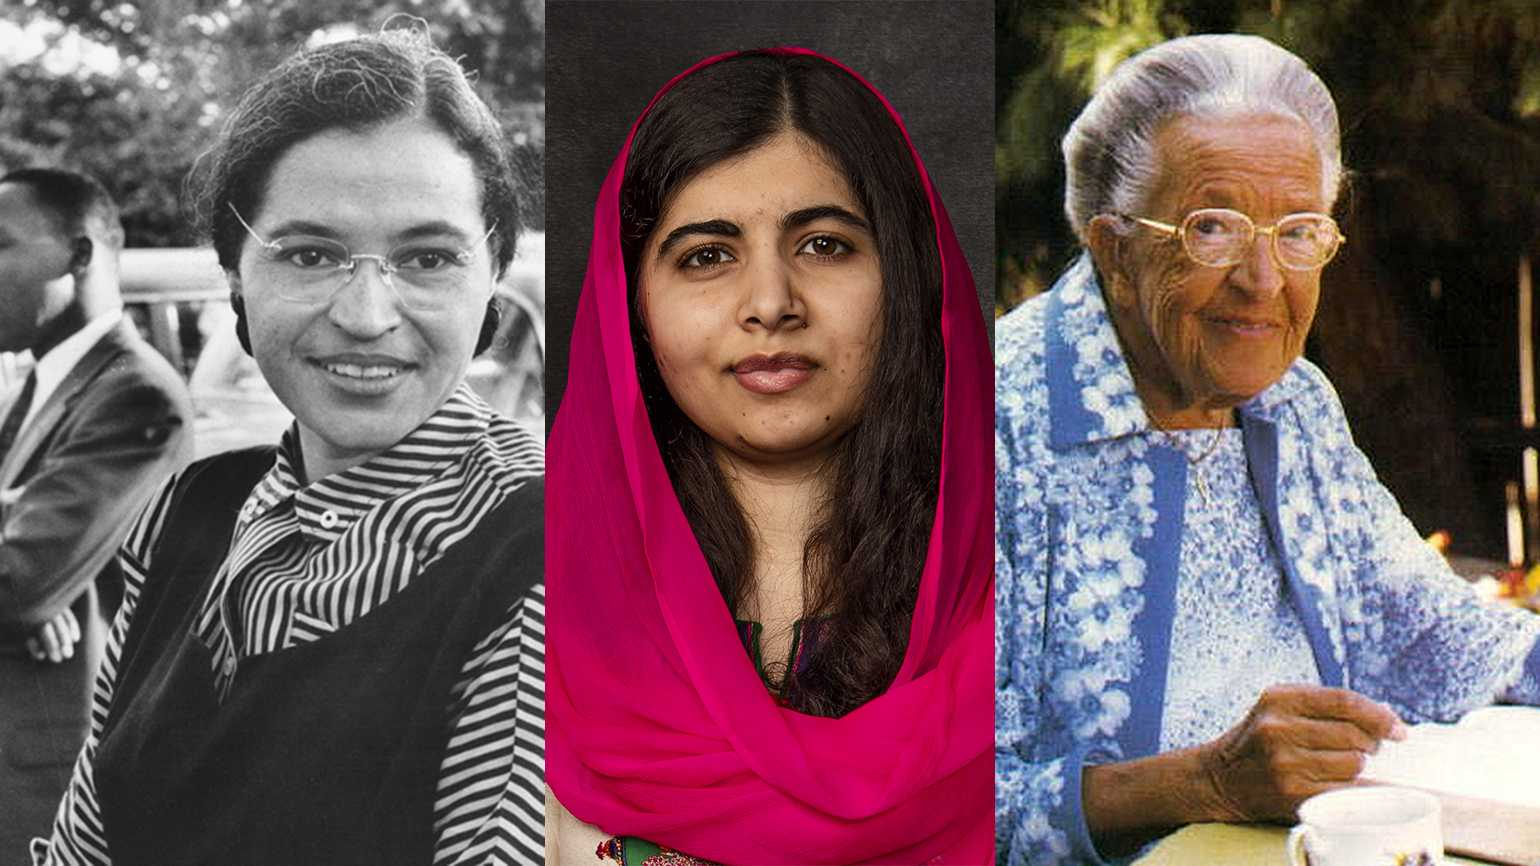 Rose Parks, Malala Yousafzai and Corrie ten Boom